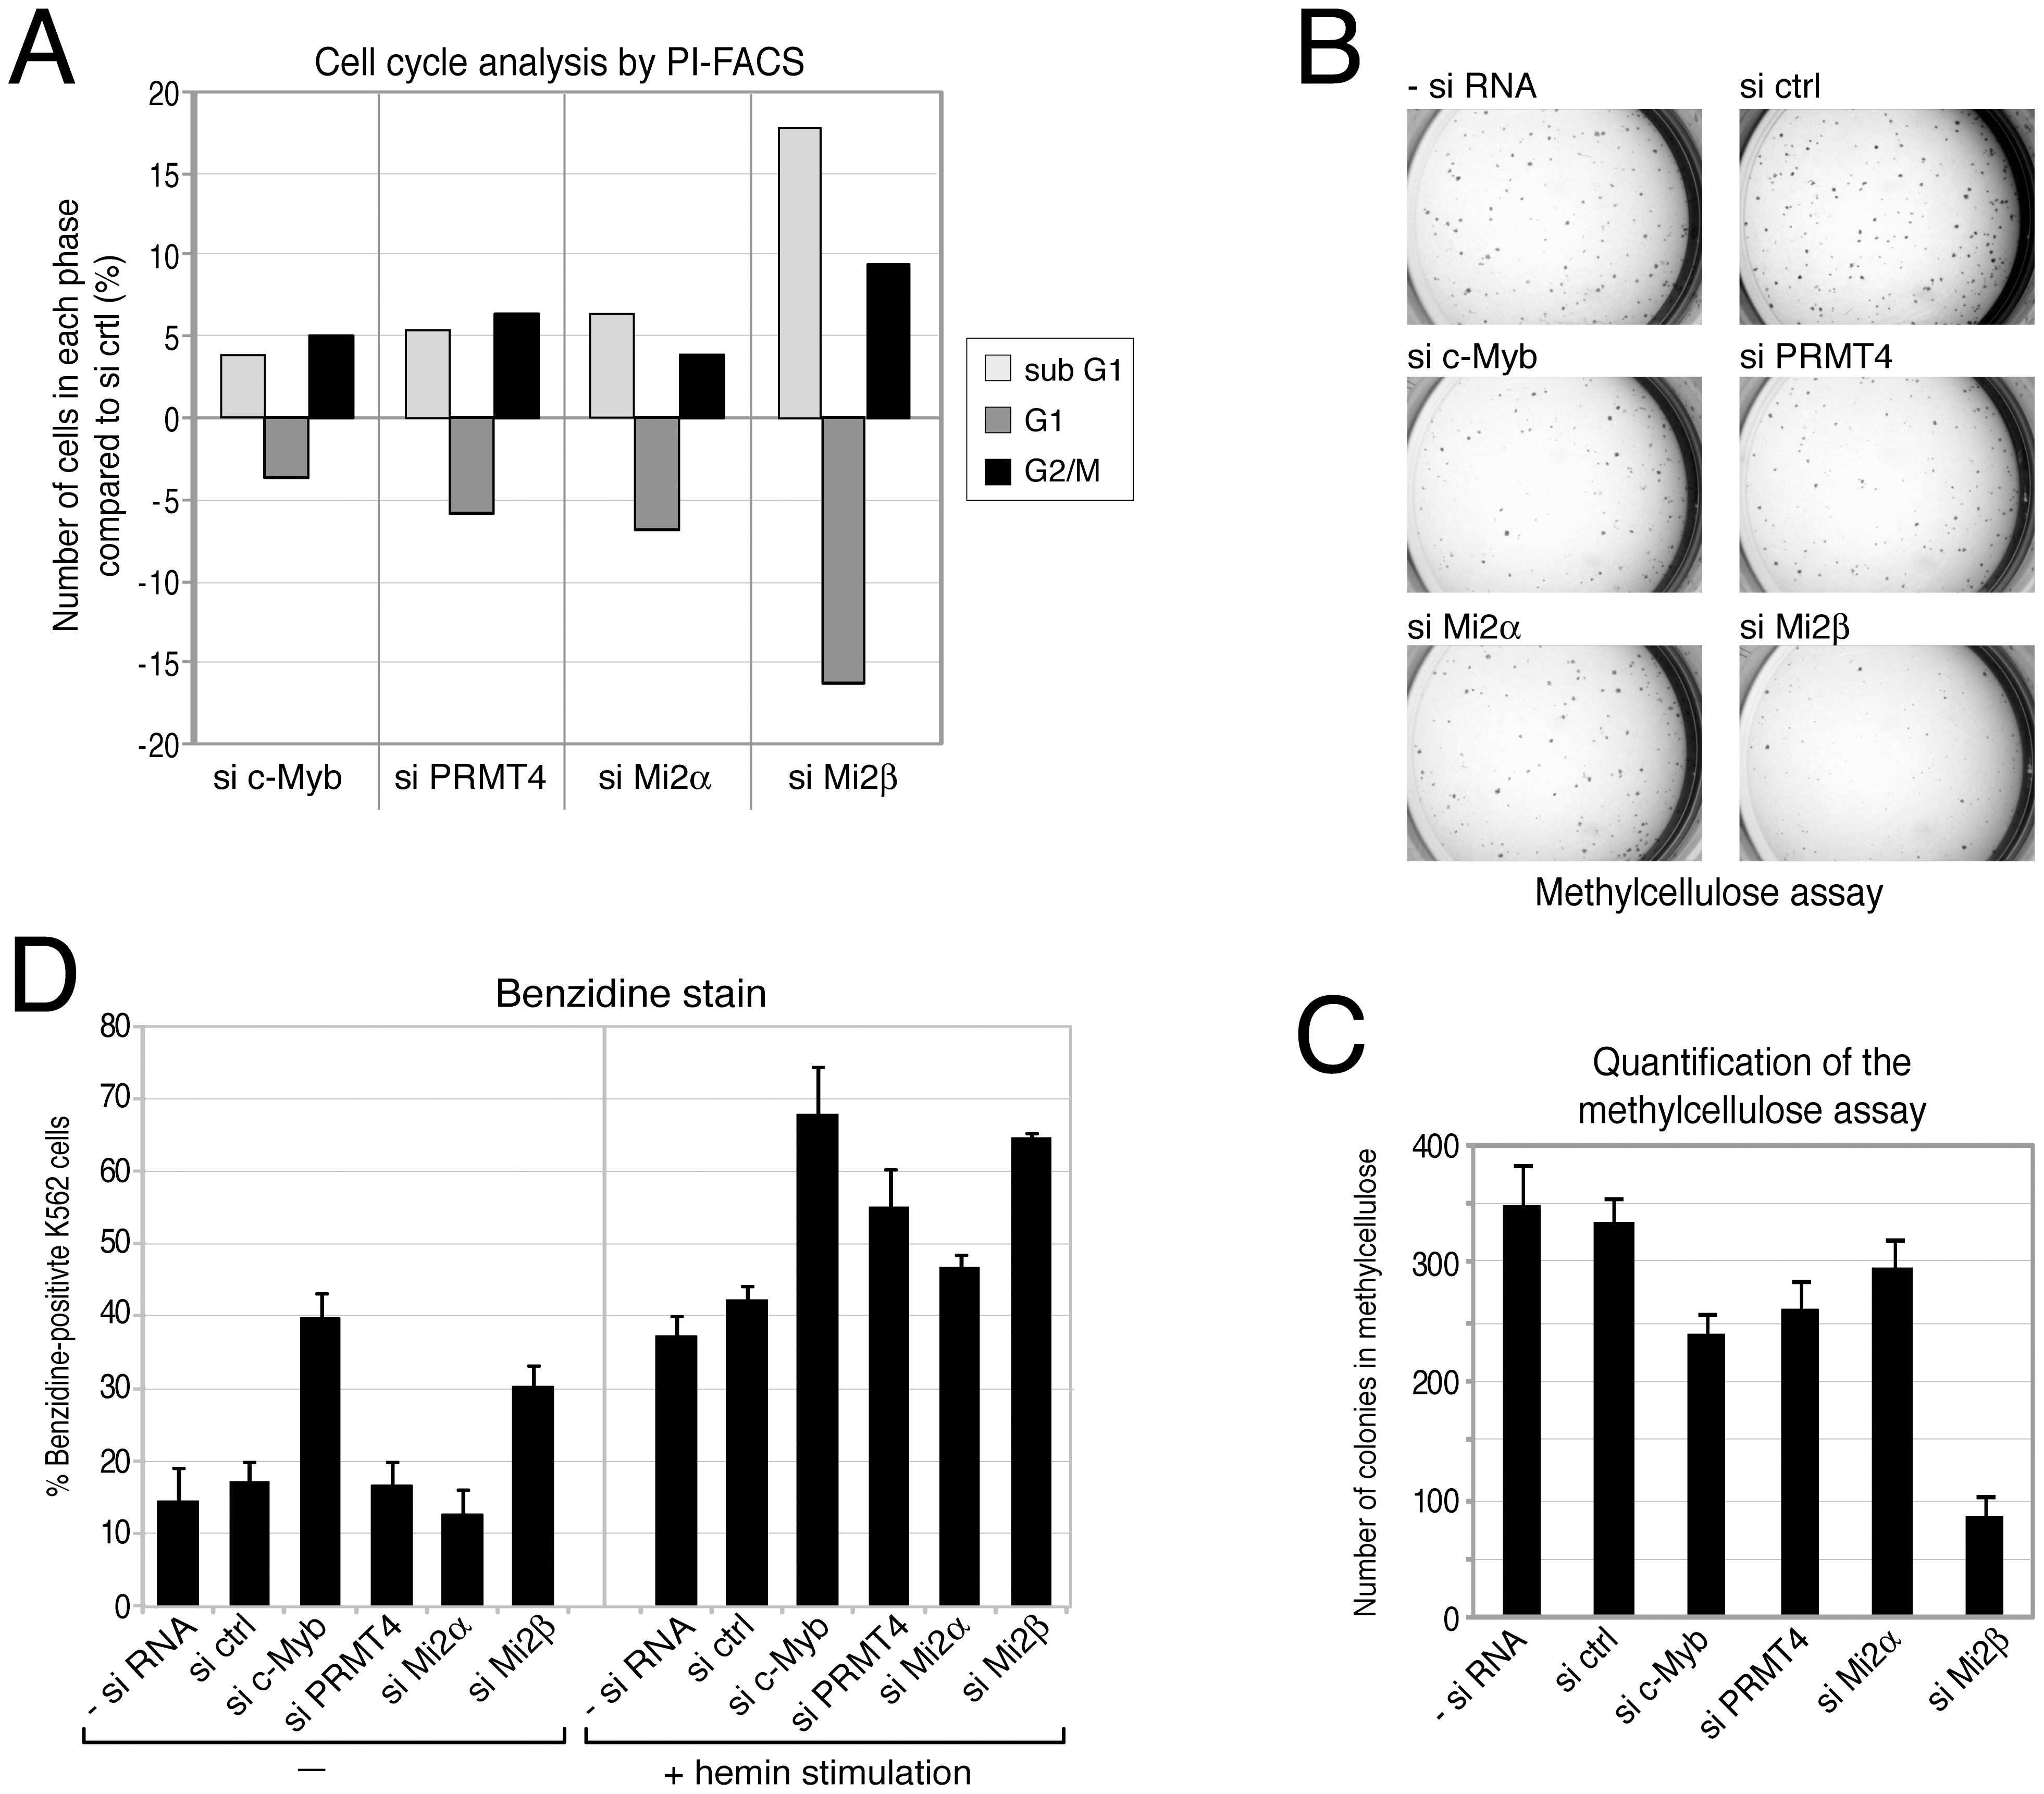 PRMT4 and Mi2 are important regulators of proliferation and differentiation function in human erythropoiesis.